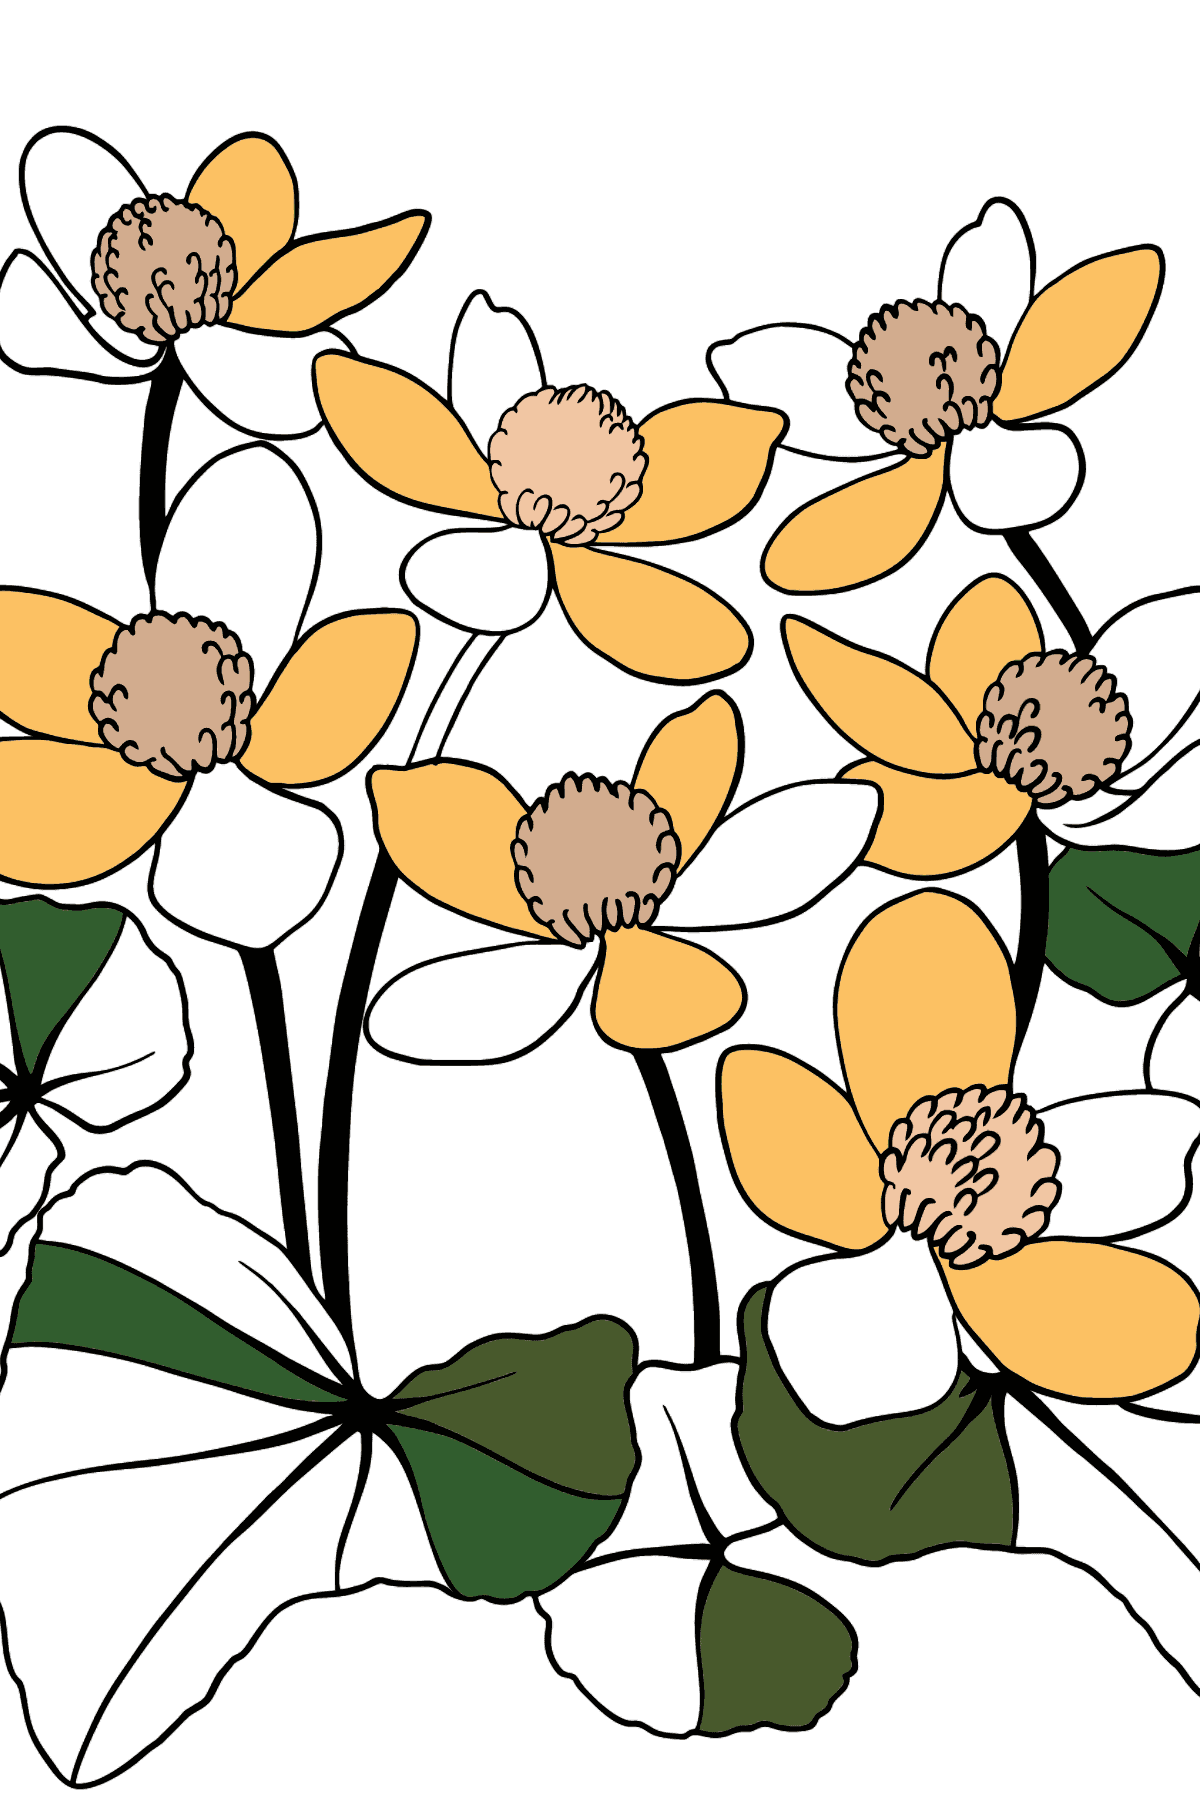 Flower Coloring Page - Marsh Marigold - Coloring Pages for Kids